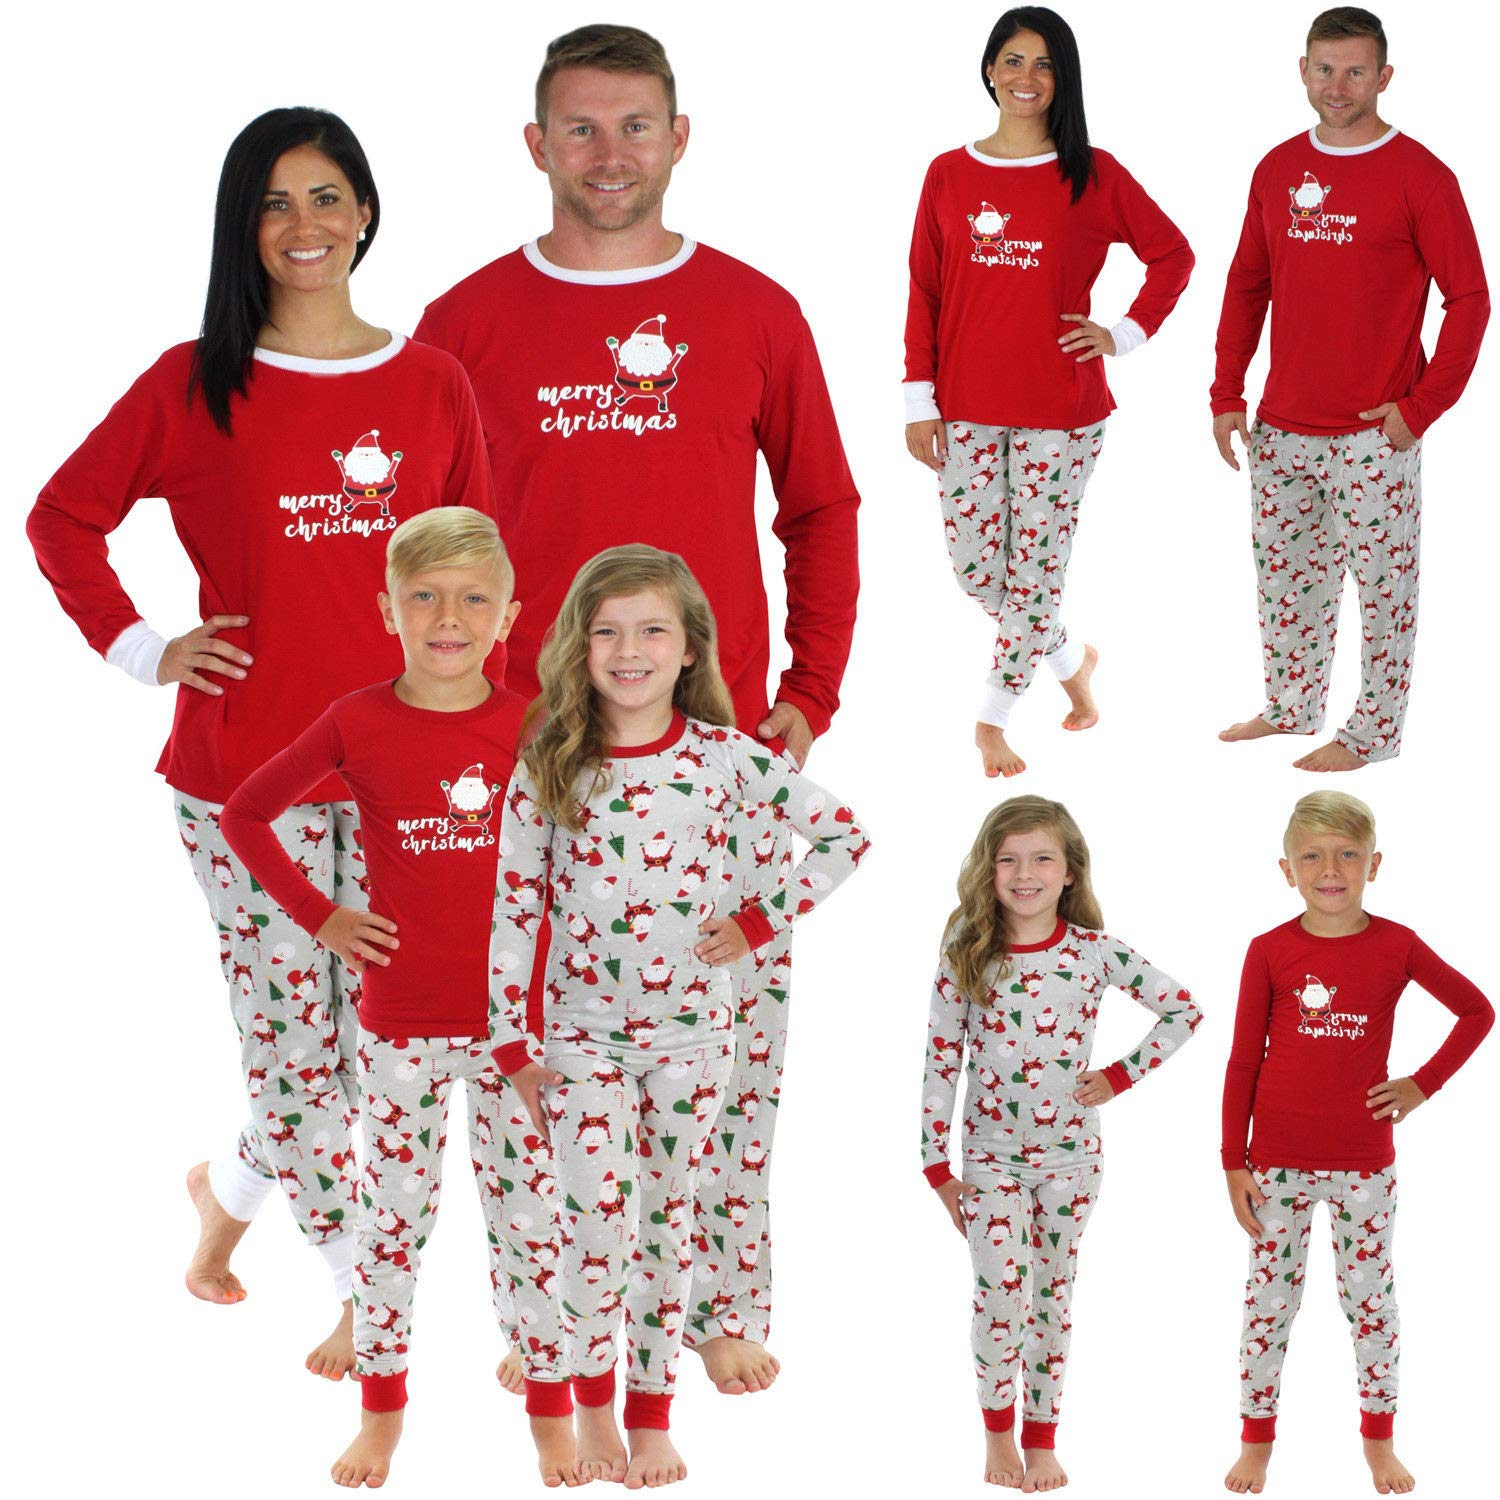 Family Matching Christmas Pajamas Set Women Baby Kids Sleepwear Xmas Nightwear Set